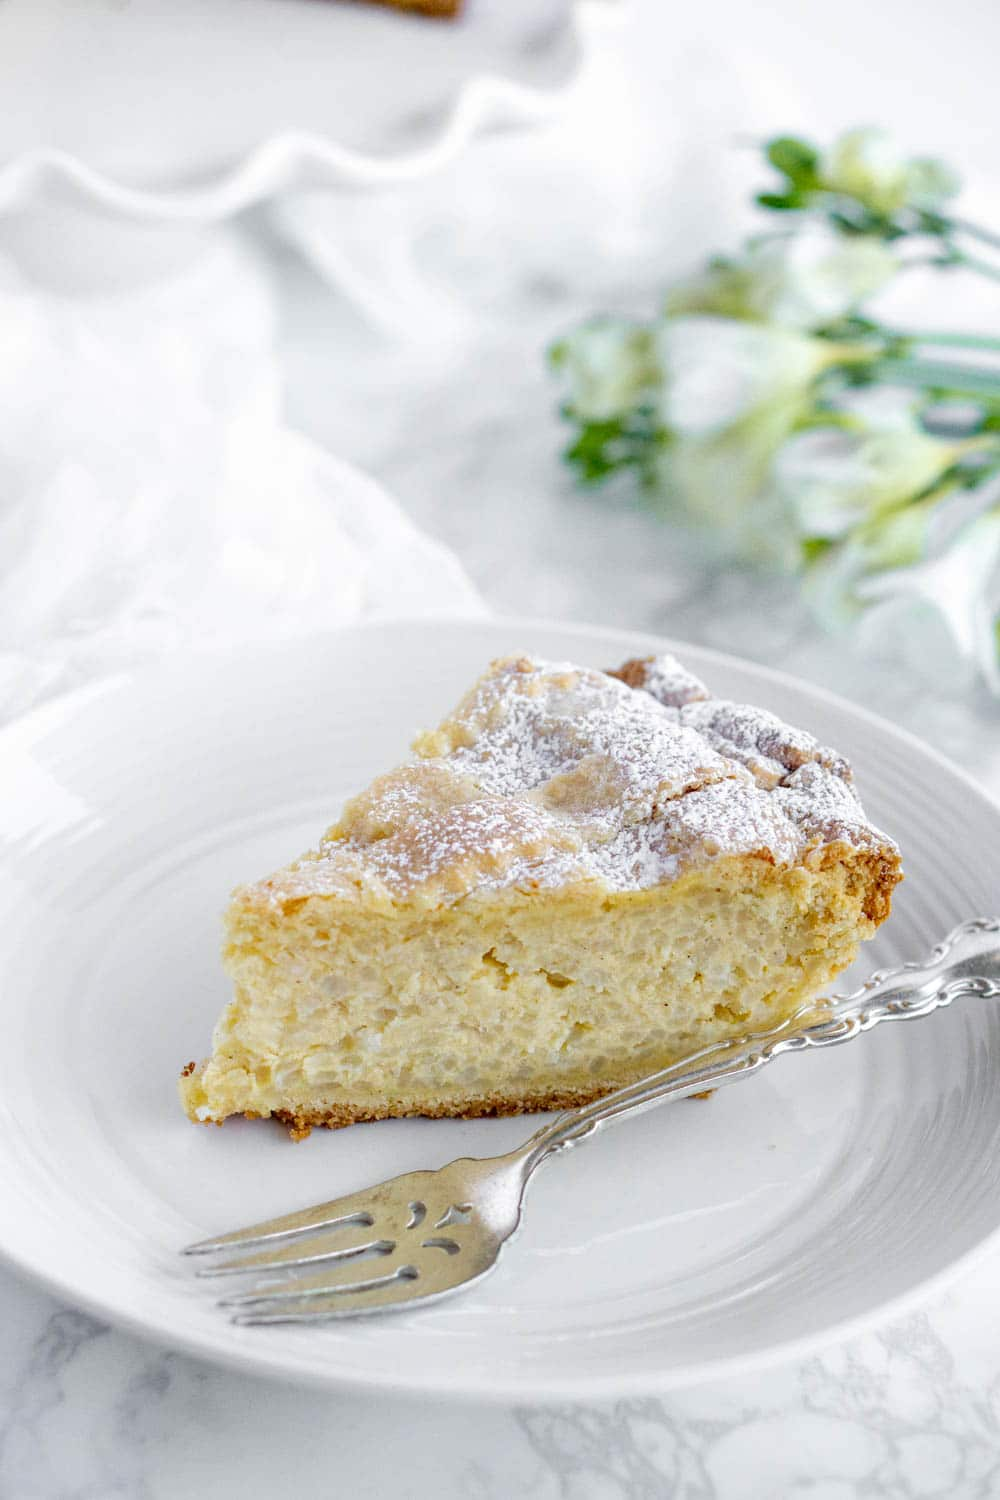 Slice of Italian Easter rice pie on a plate with flowers in the background